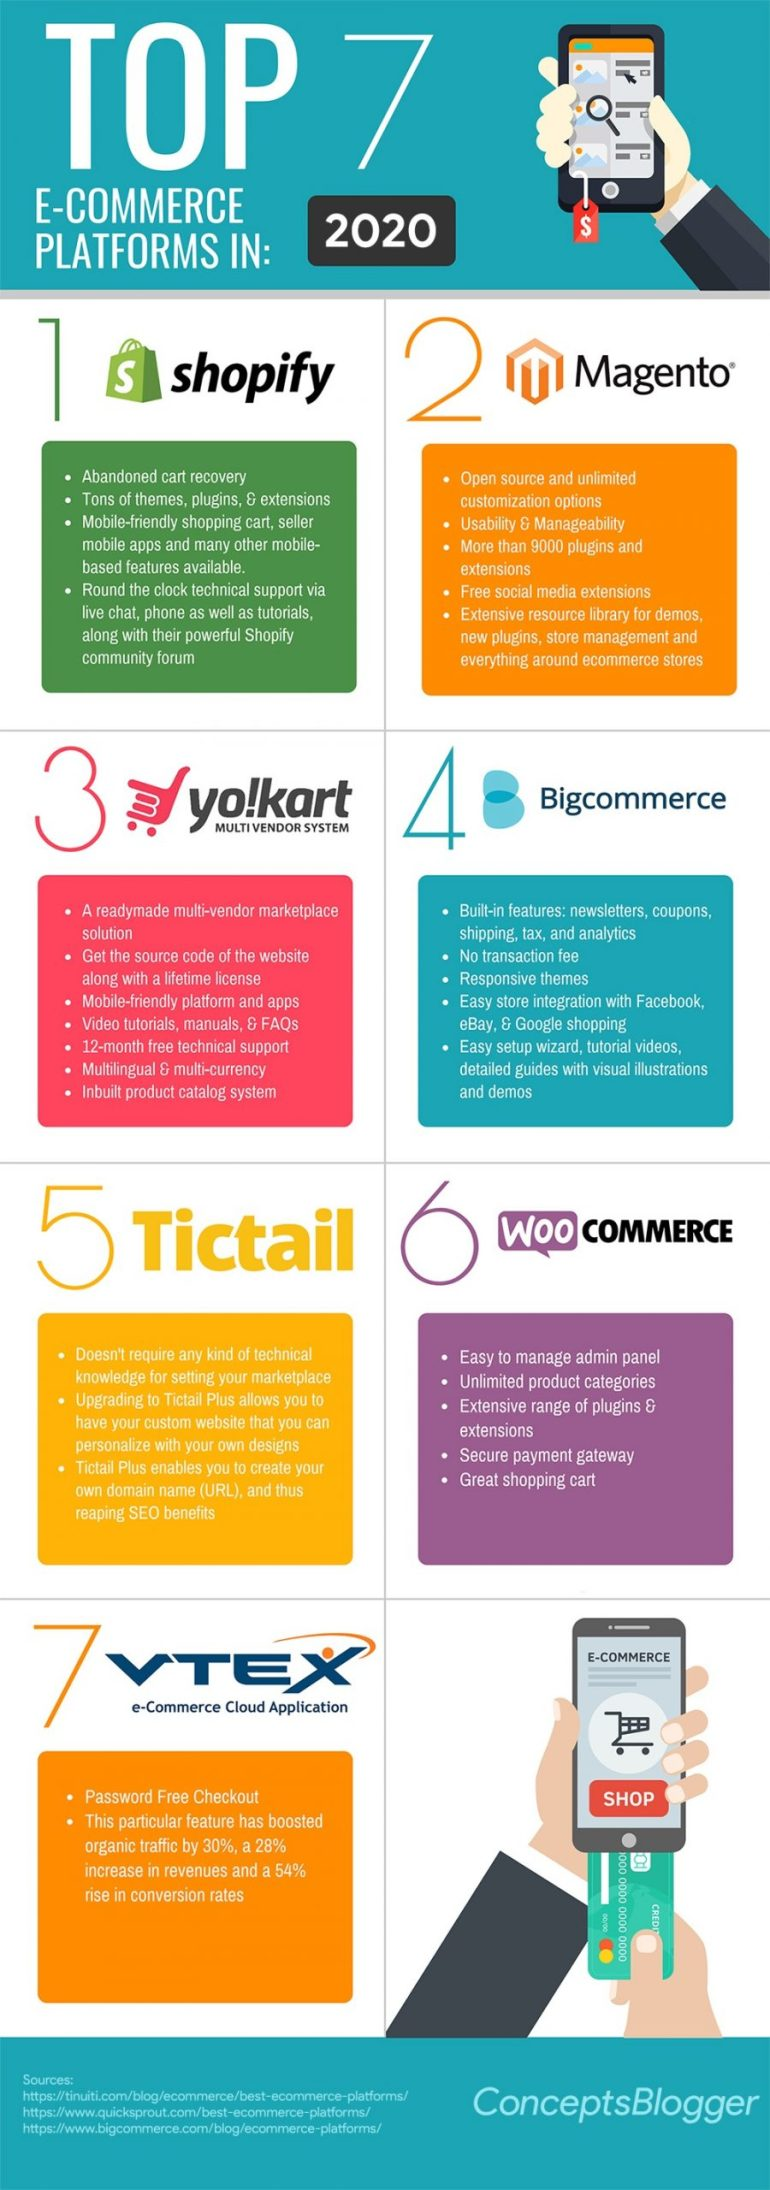 top 7 ecommerce platforms in 2020 infographic